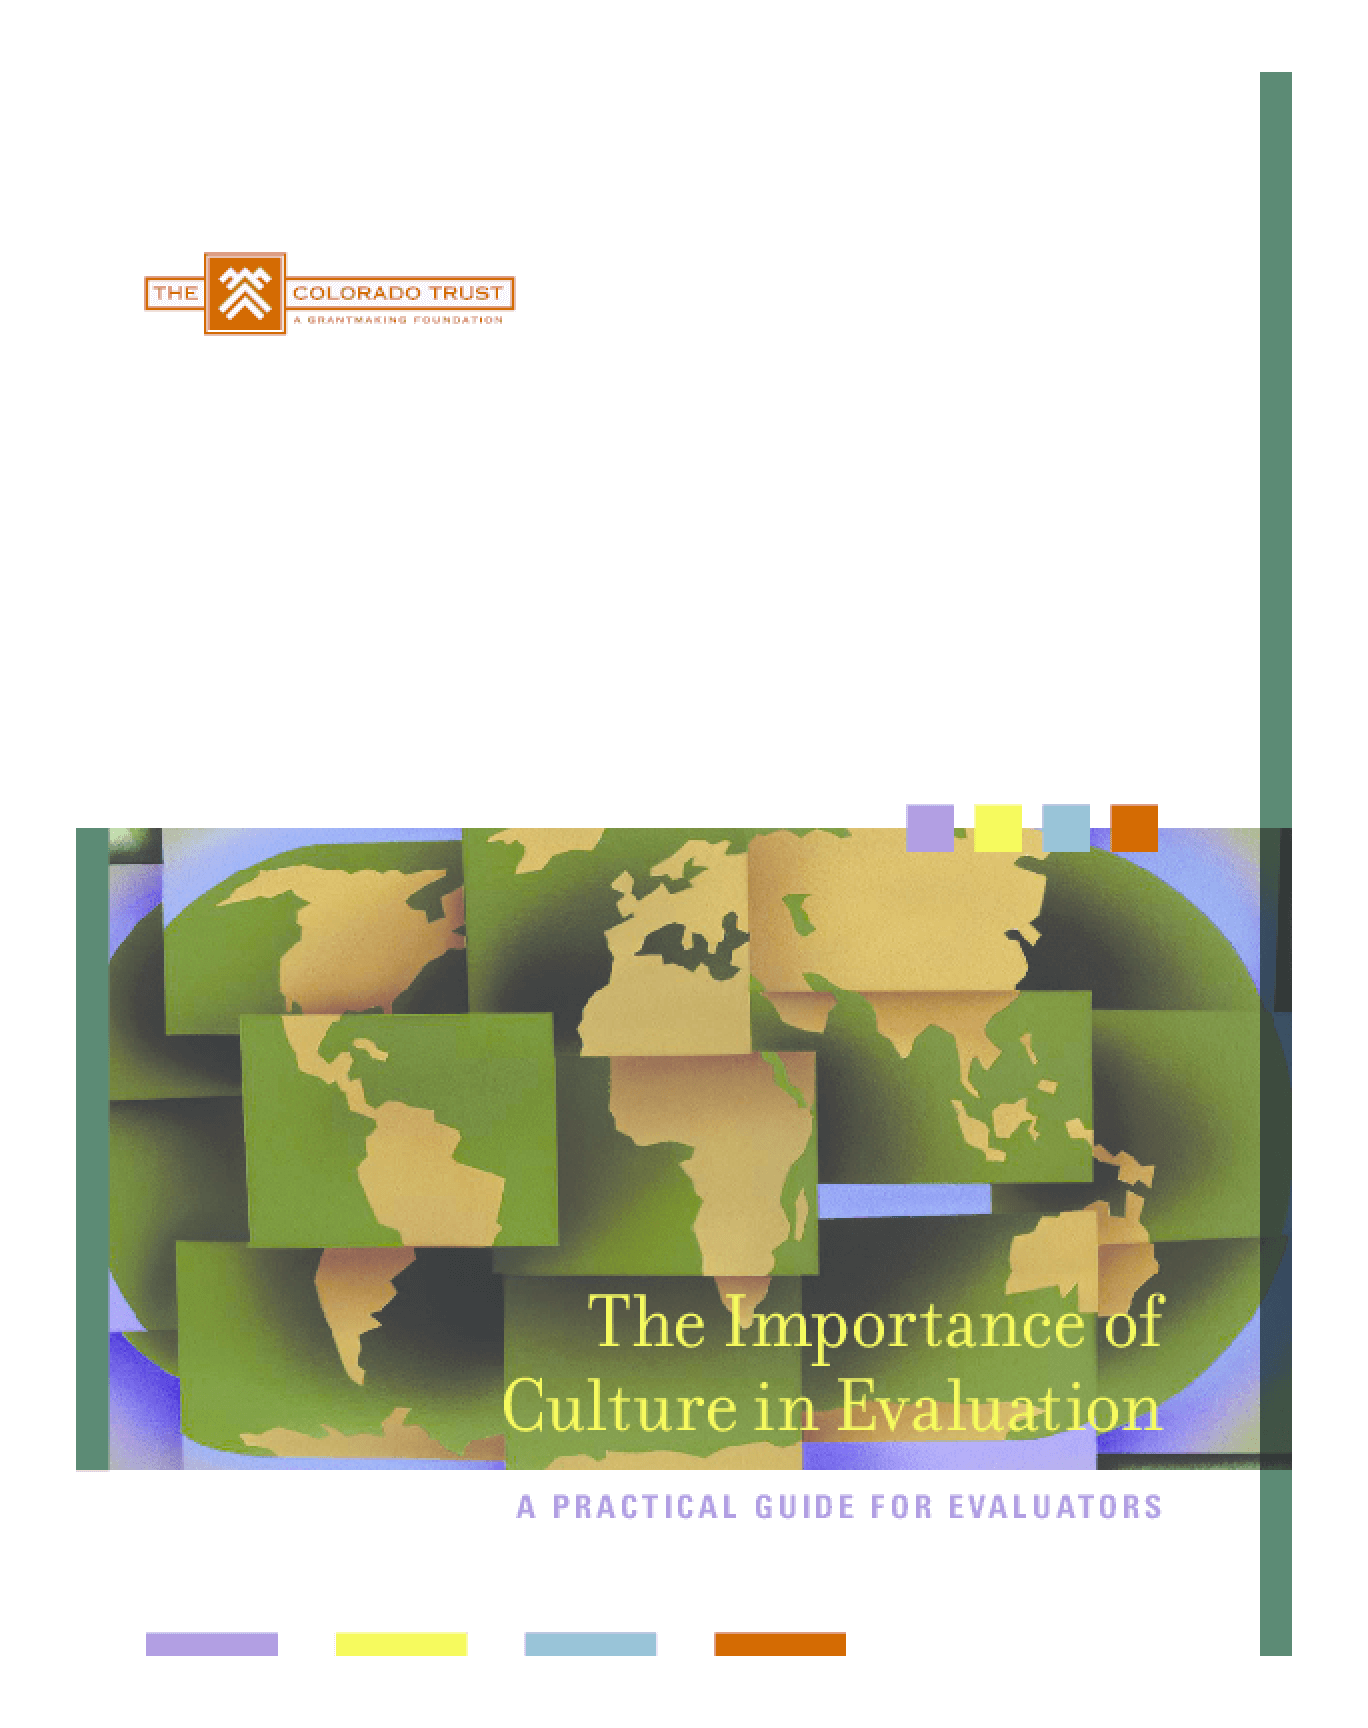 The Importance of Culture in Evaluation: A Practical Guide for Evaluators